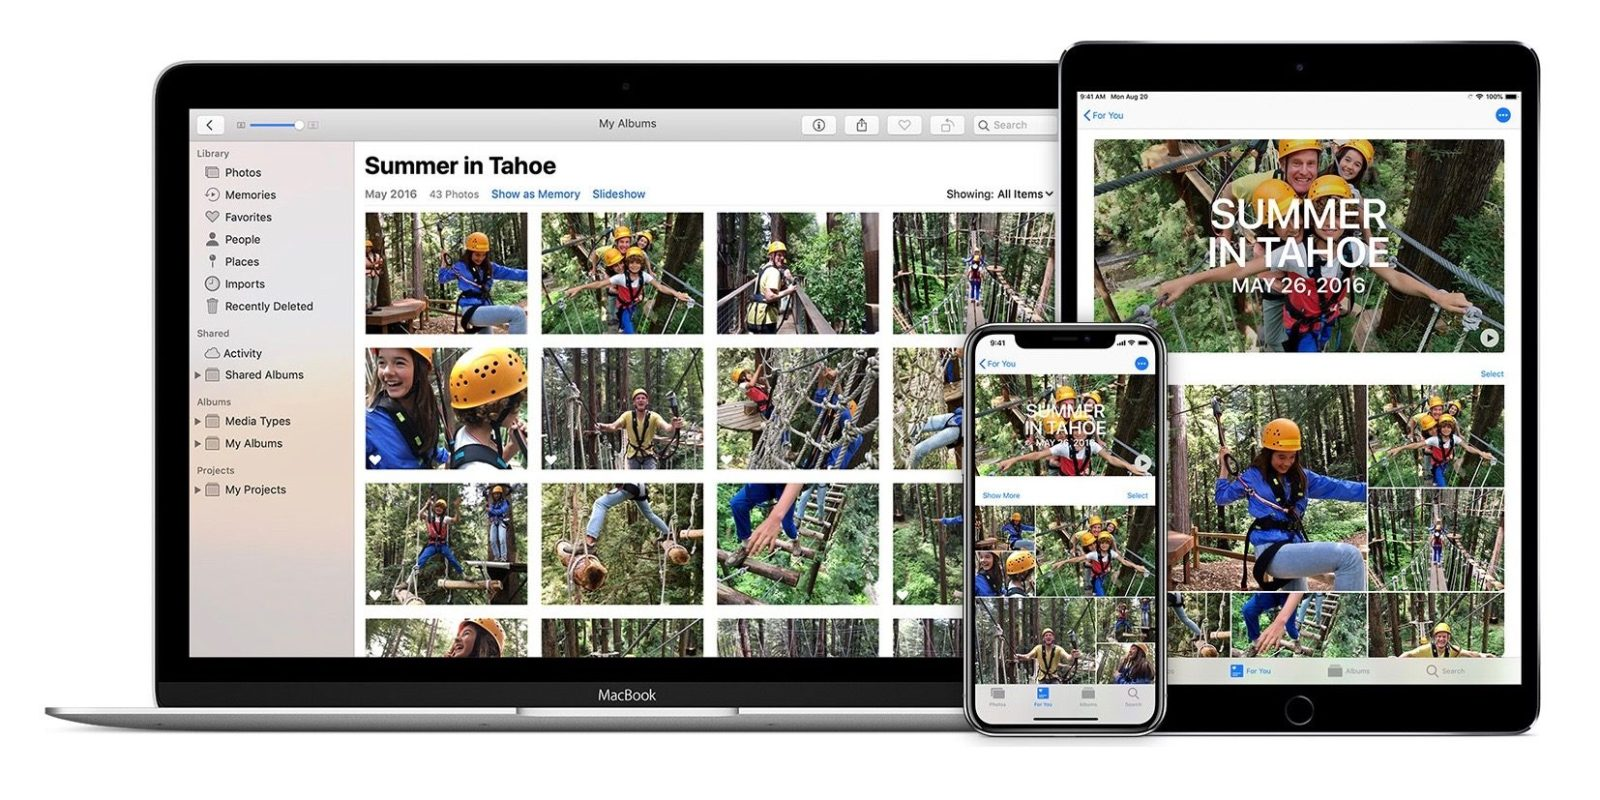 QnA VBage Opinion: It's long past time for Apple to fix iCloud Photo sharing for families